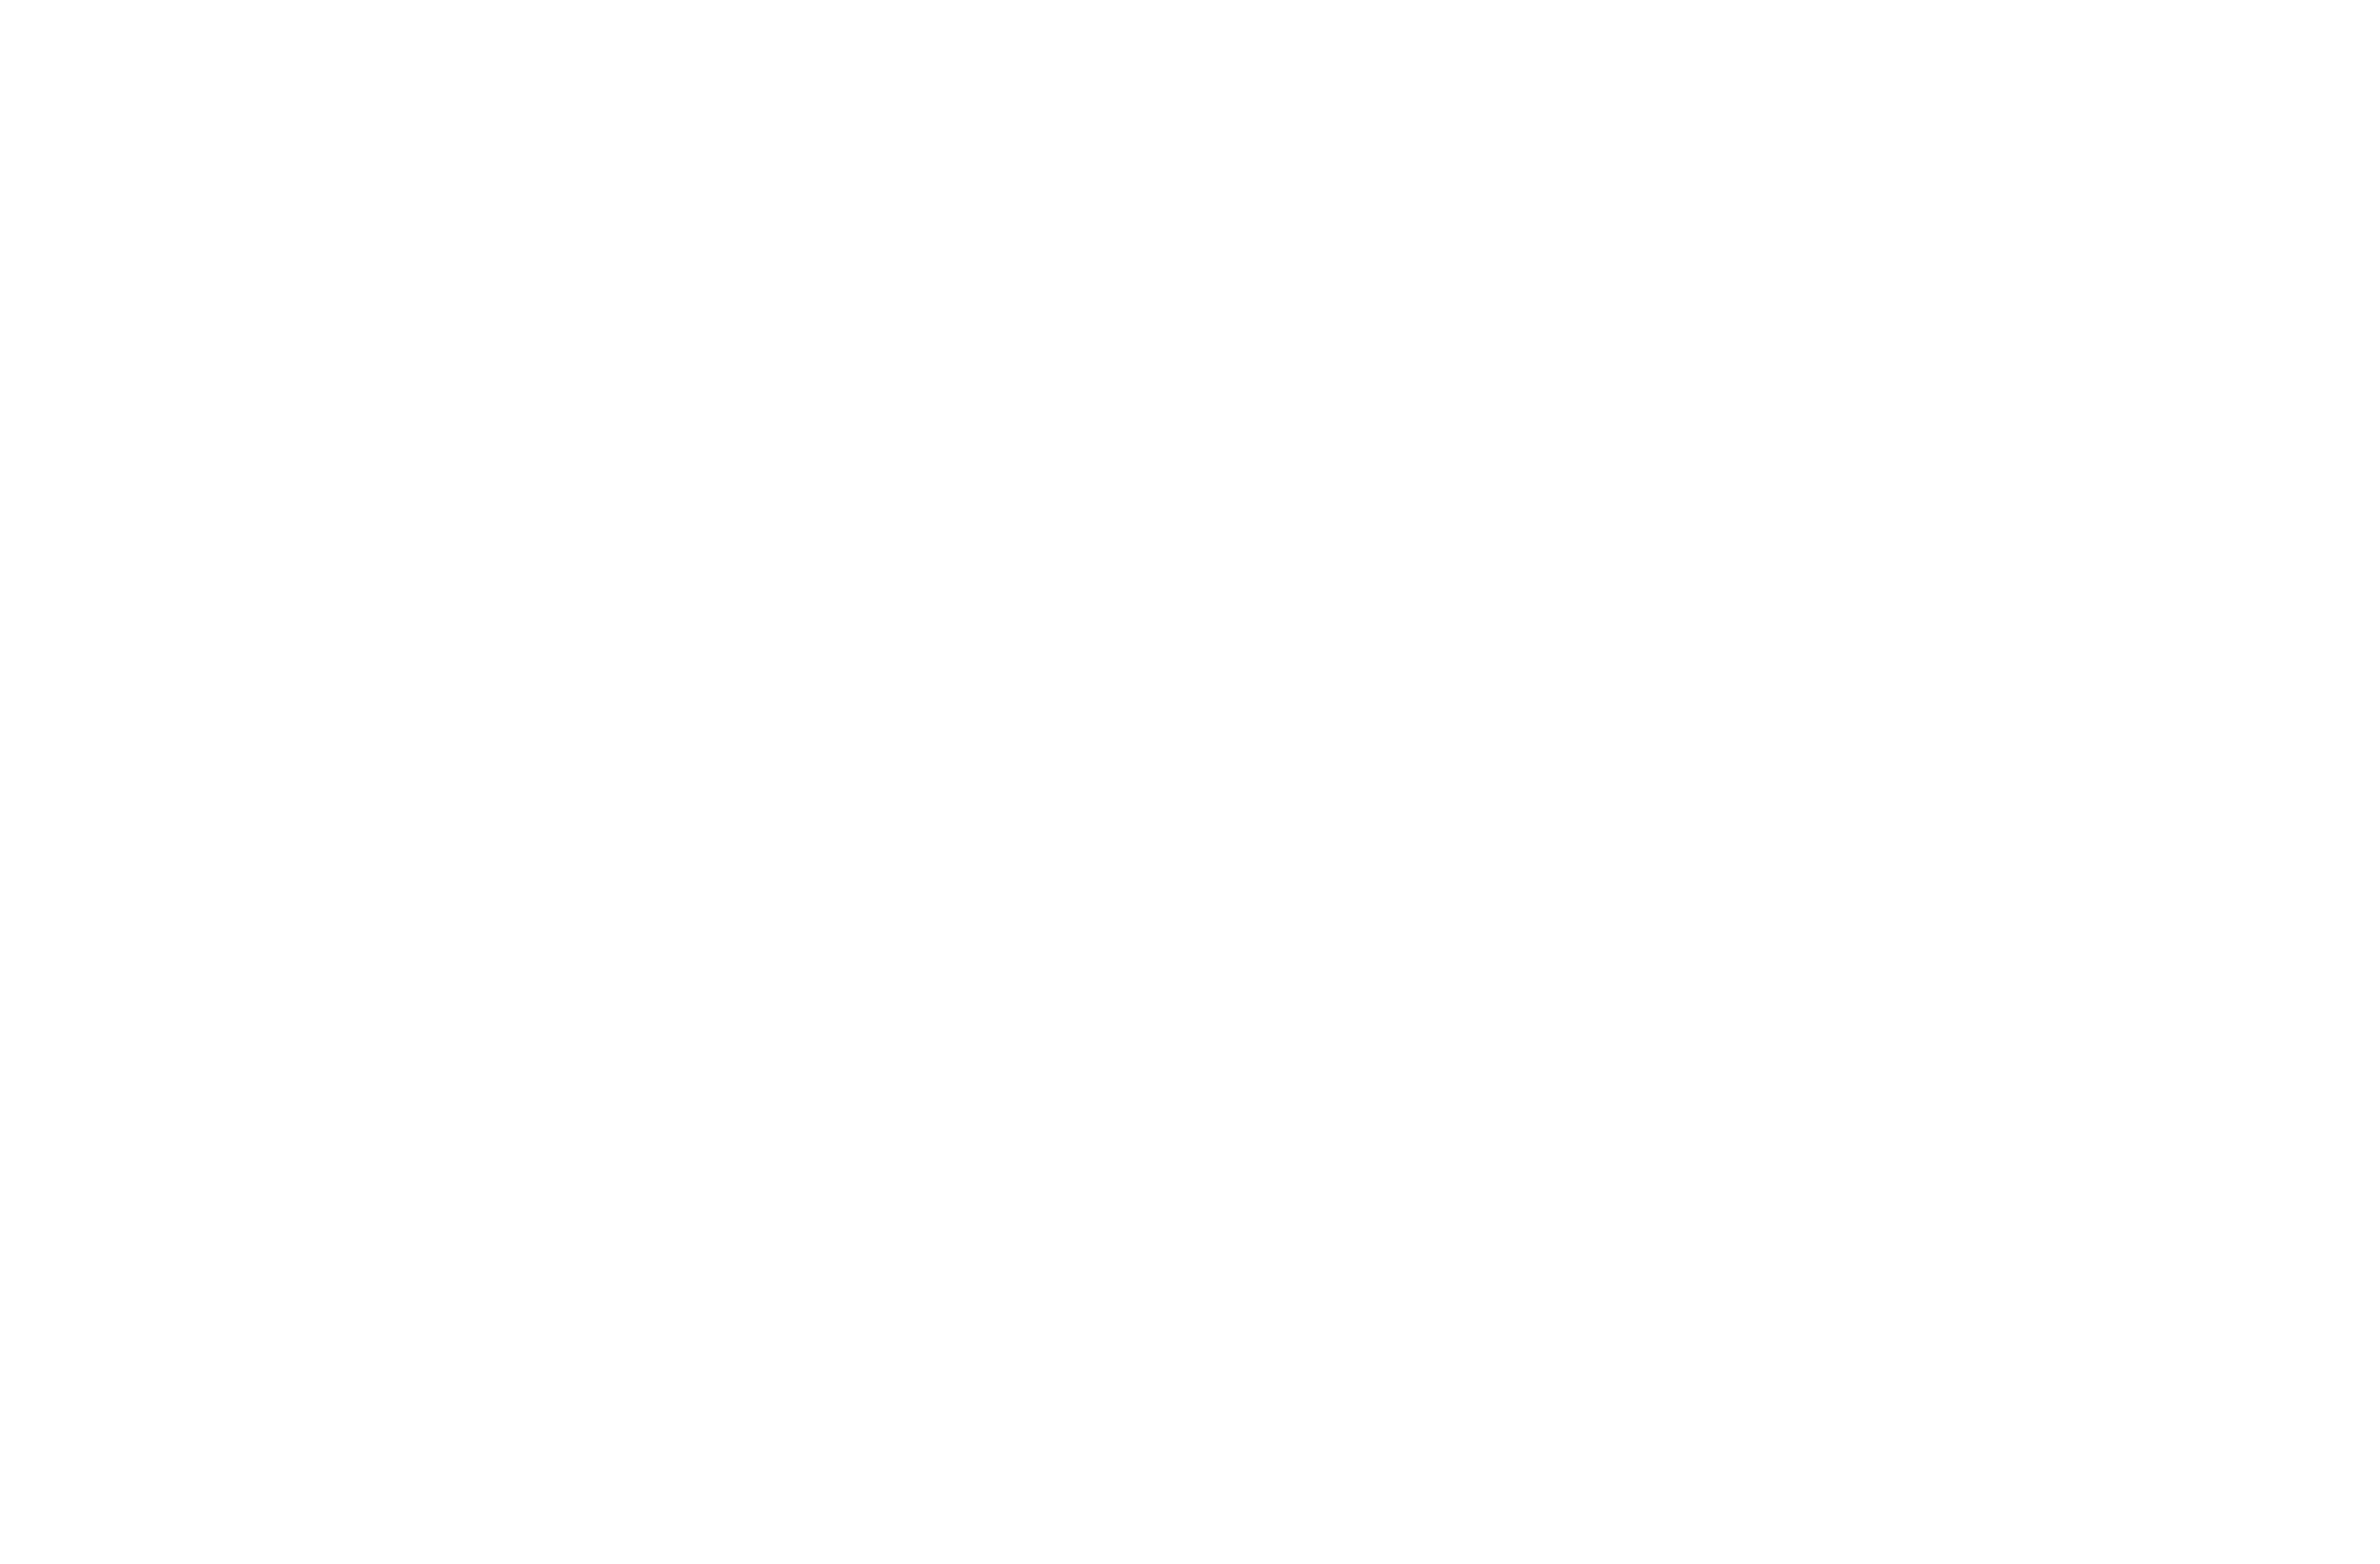 Creative_Scotland_REV.png